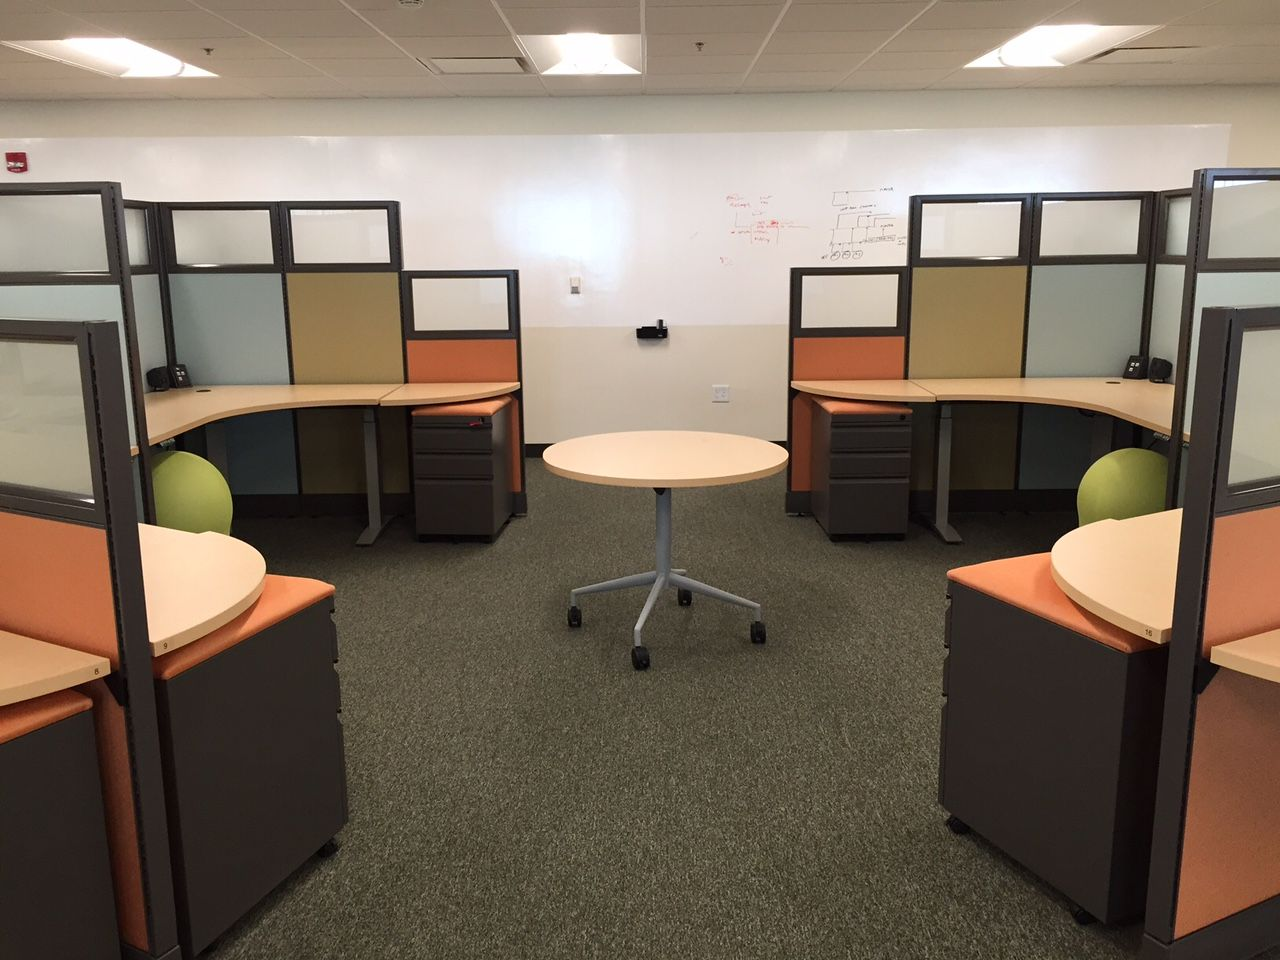 Uncategorized Cubicle Offices a modified dogbone style cubicle with glass httpjoycecontract com